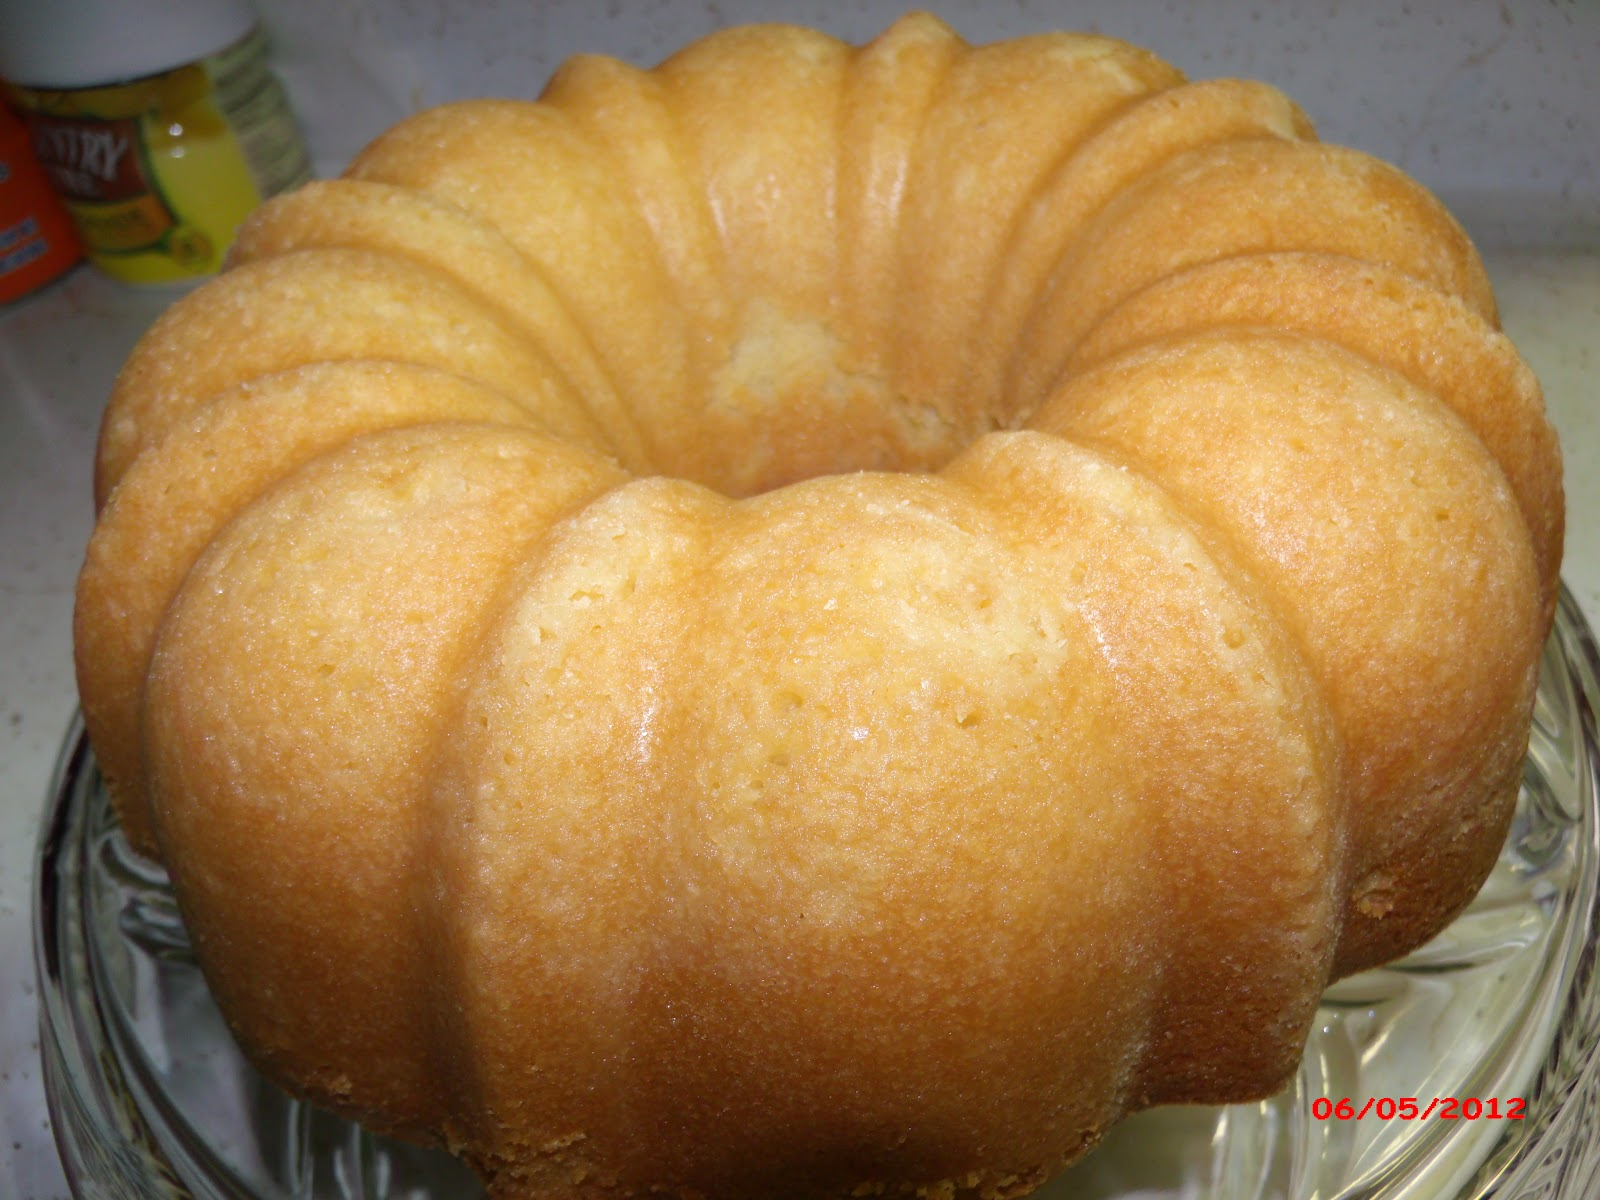 ... pound cake perfect pound cake easy pound cake chamomile pound cake